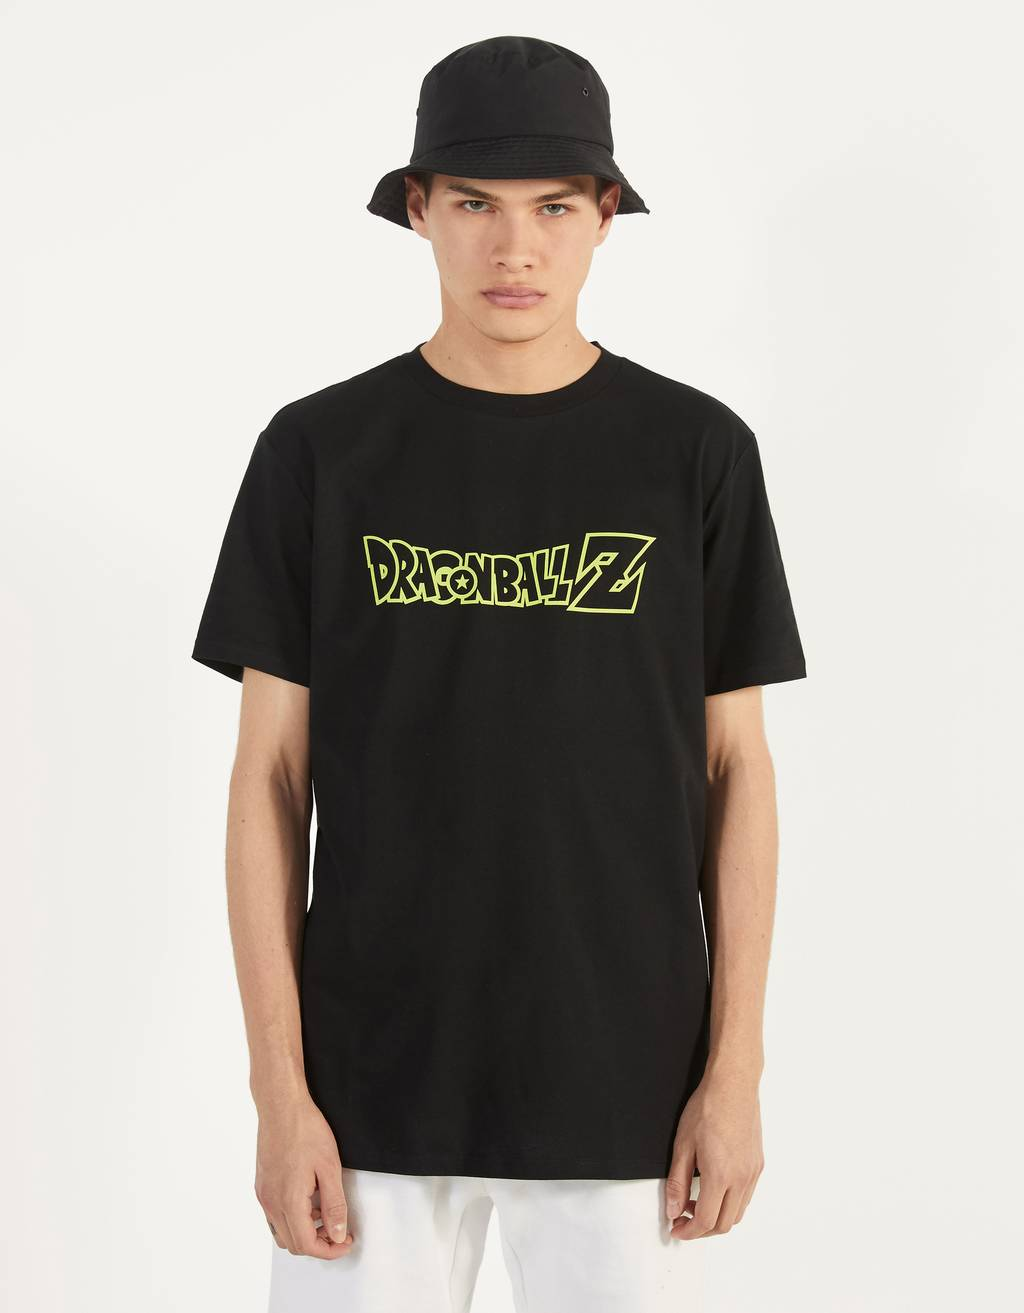 Dragon Ball Z x Bershka majica